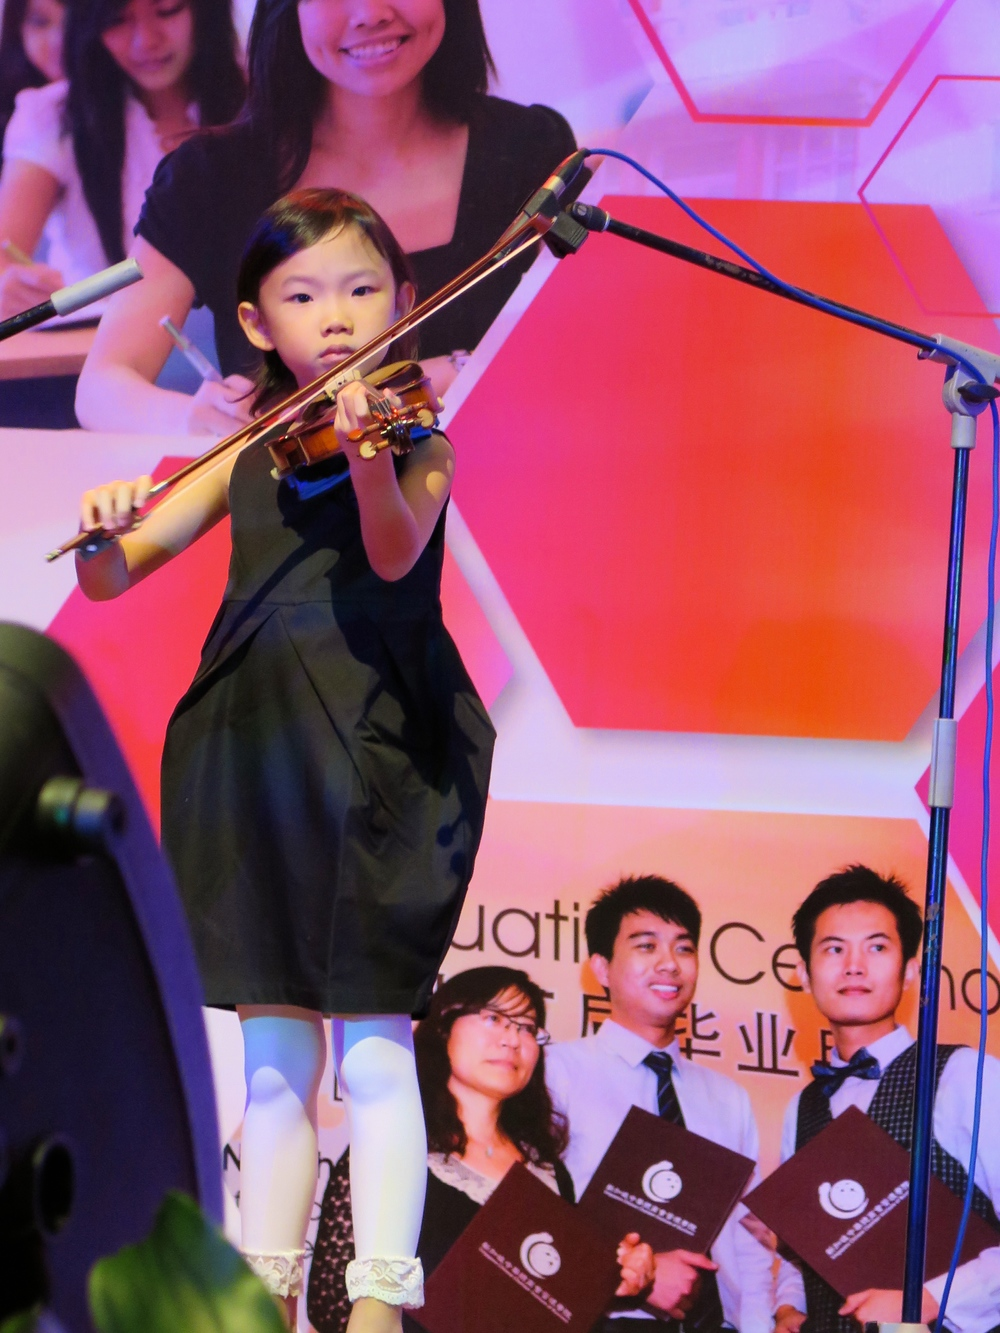 6 year old Faith Ow in her debut public performance